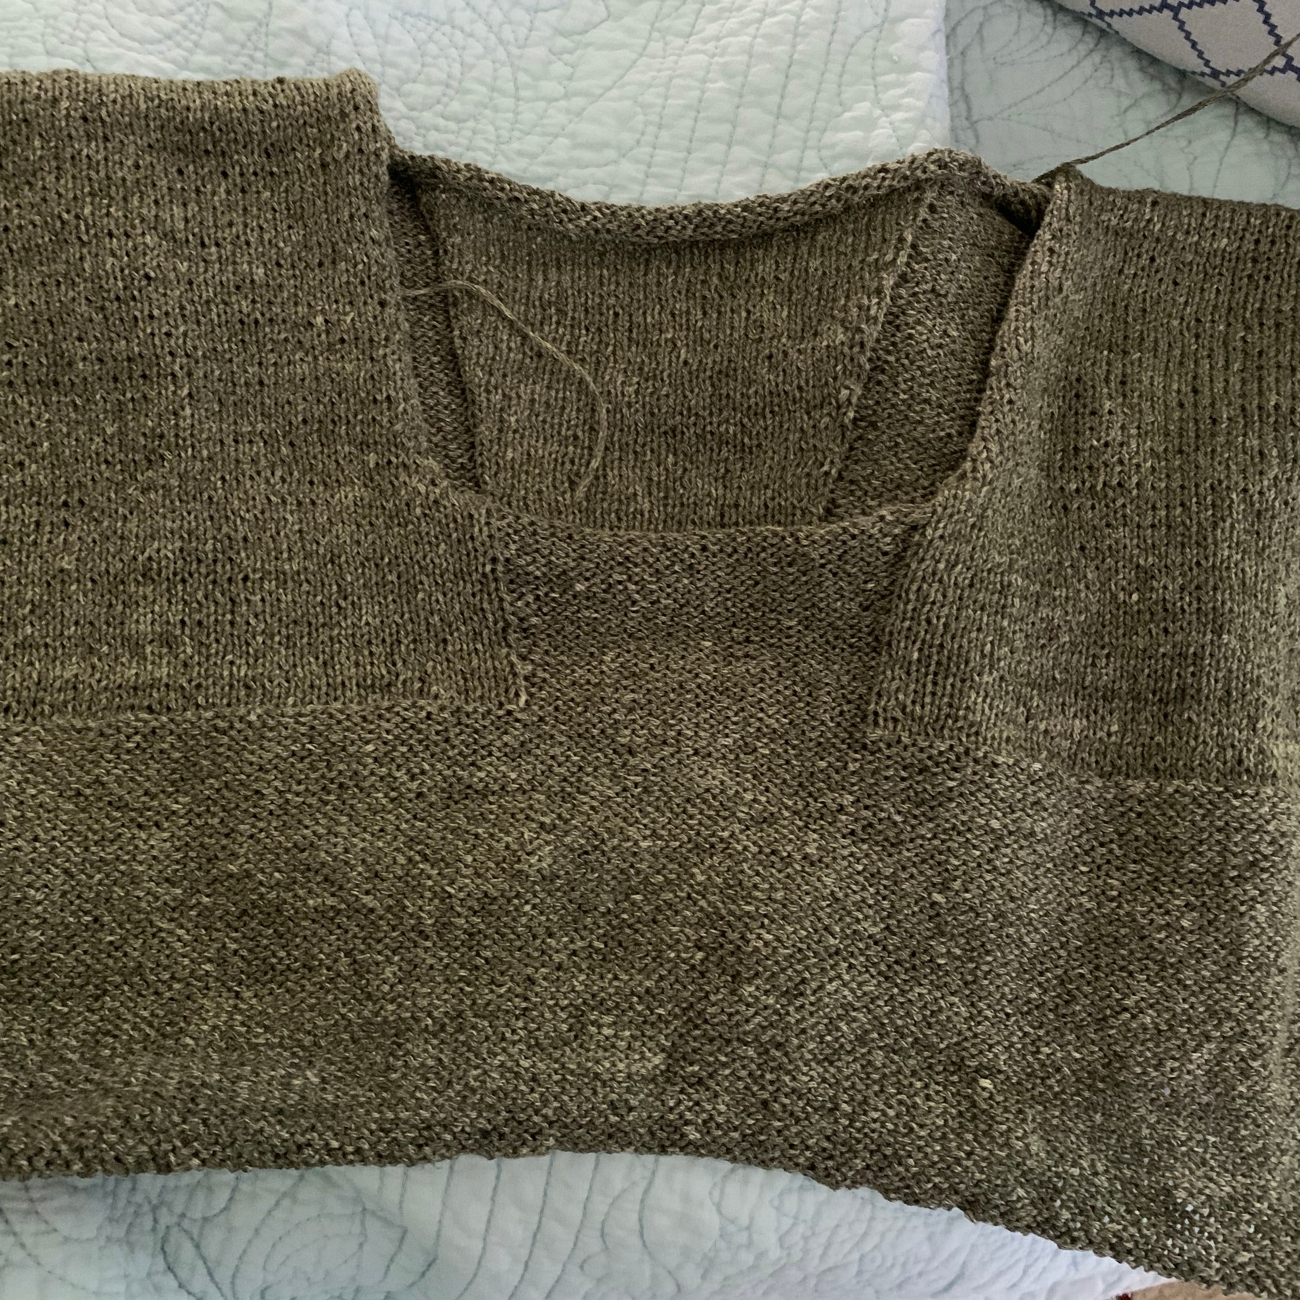 Knitting a top